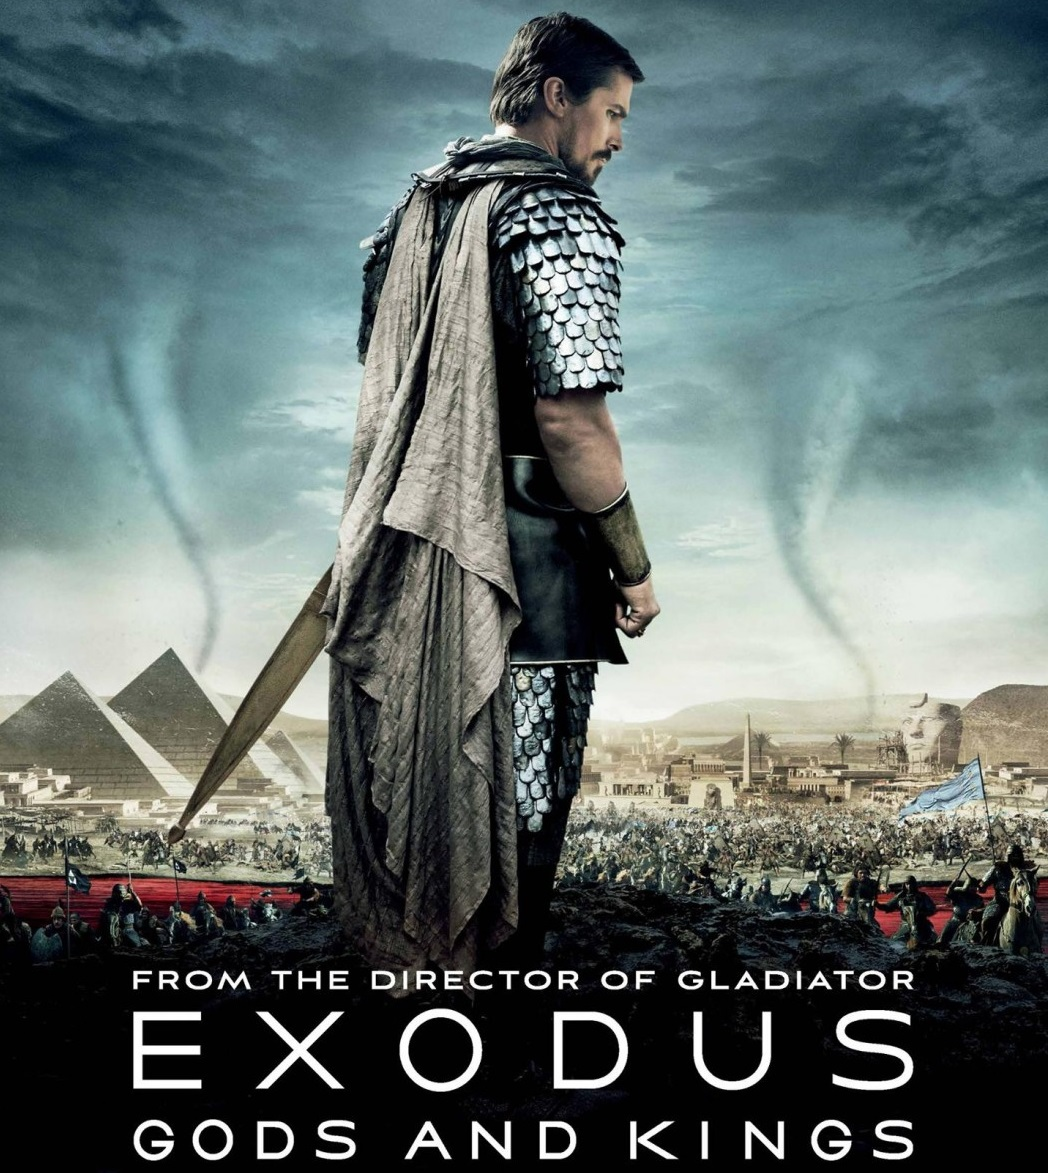 Box Office, Exodus: Gods and Kings Opens at #1